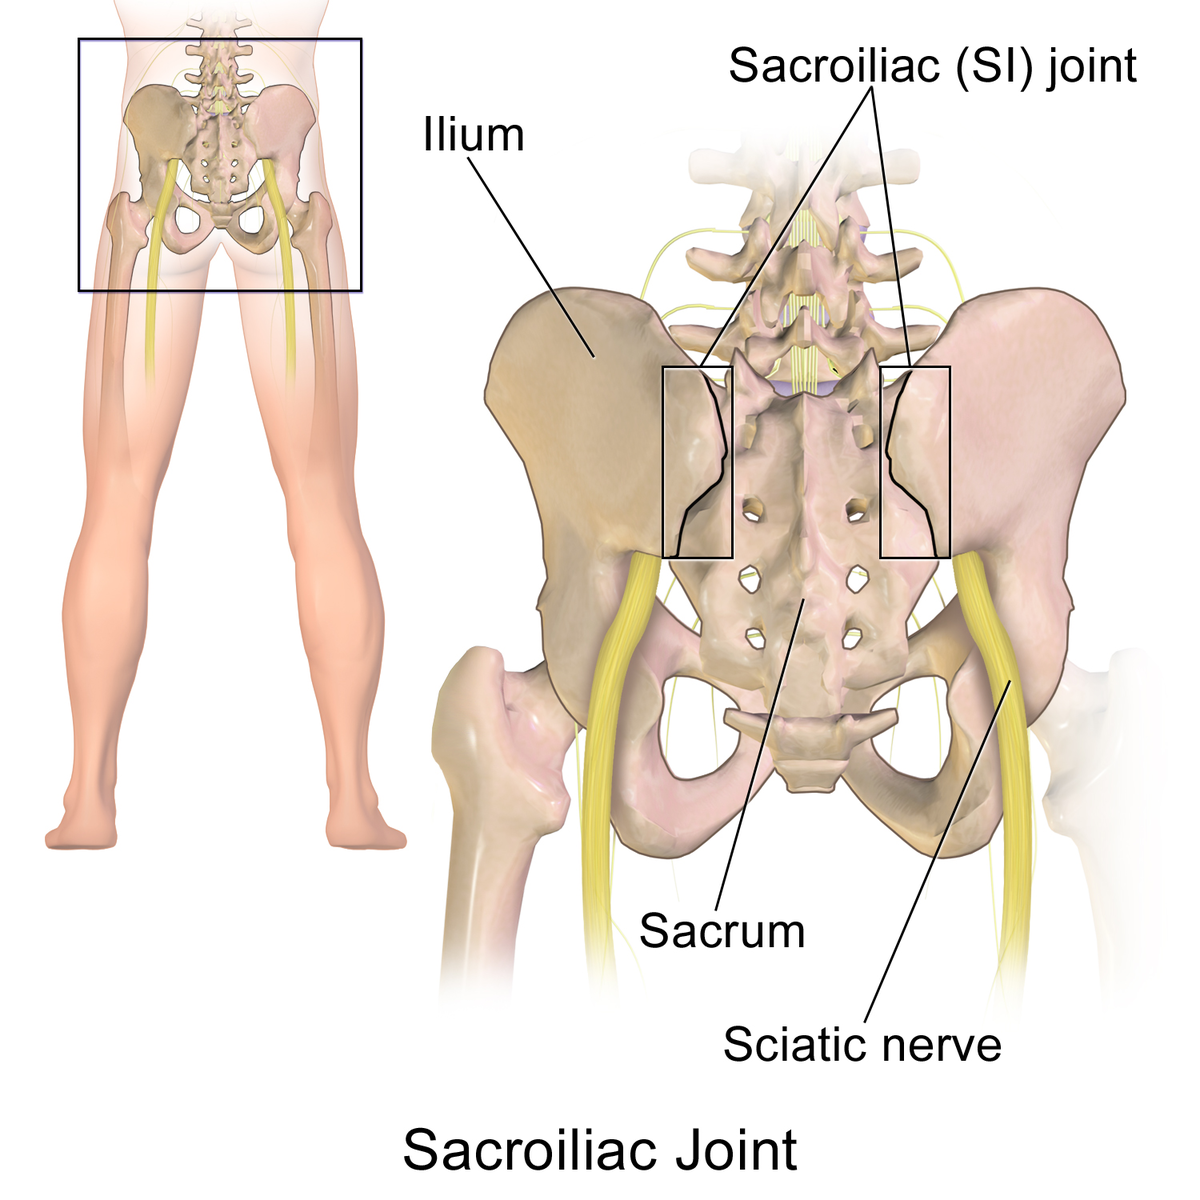 The sacroiliac joint, which can be accessed with acupunture needles and treats low back pain